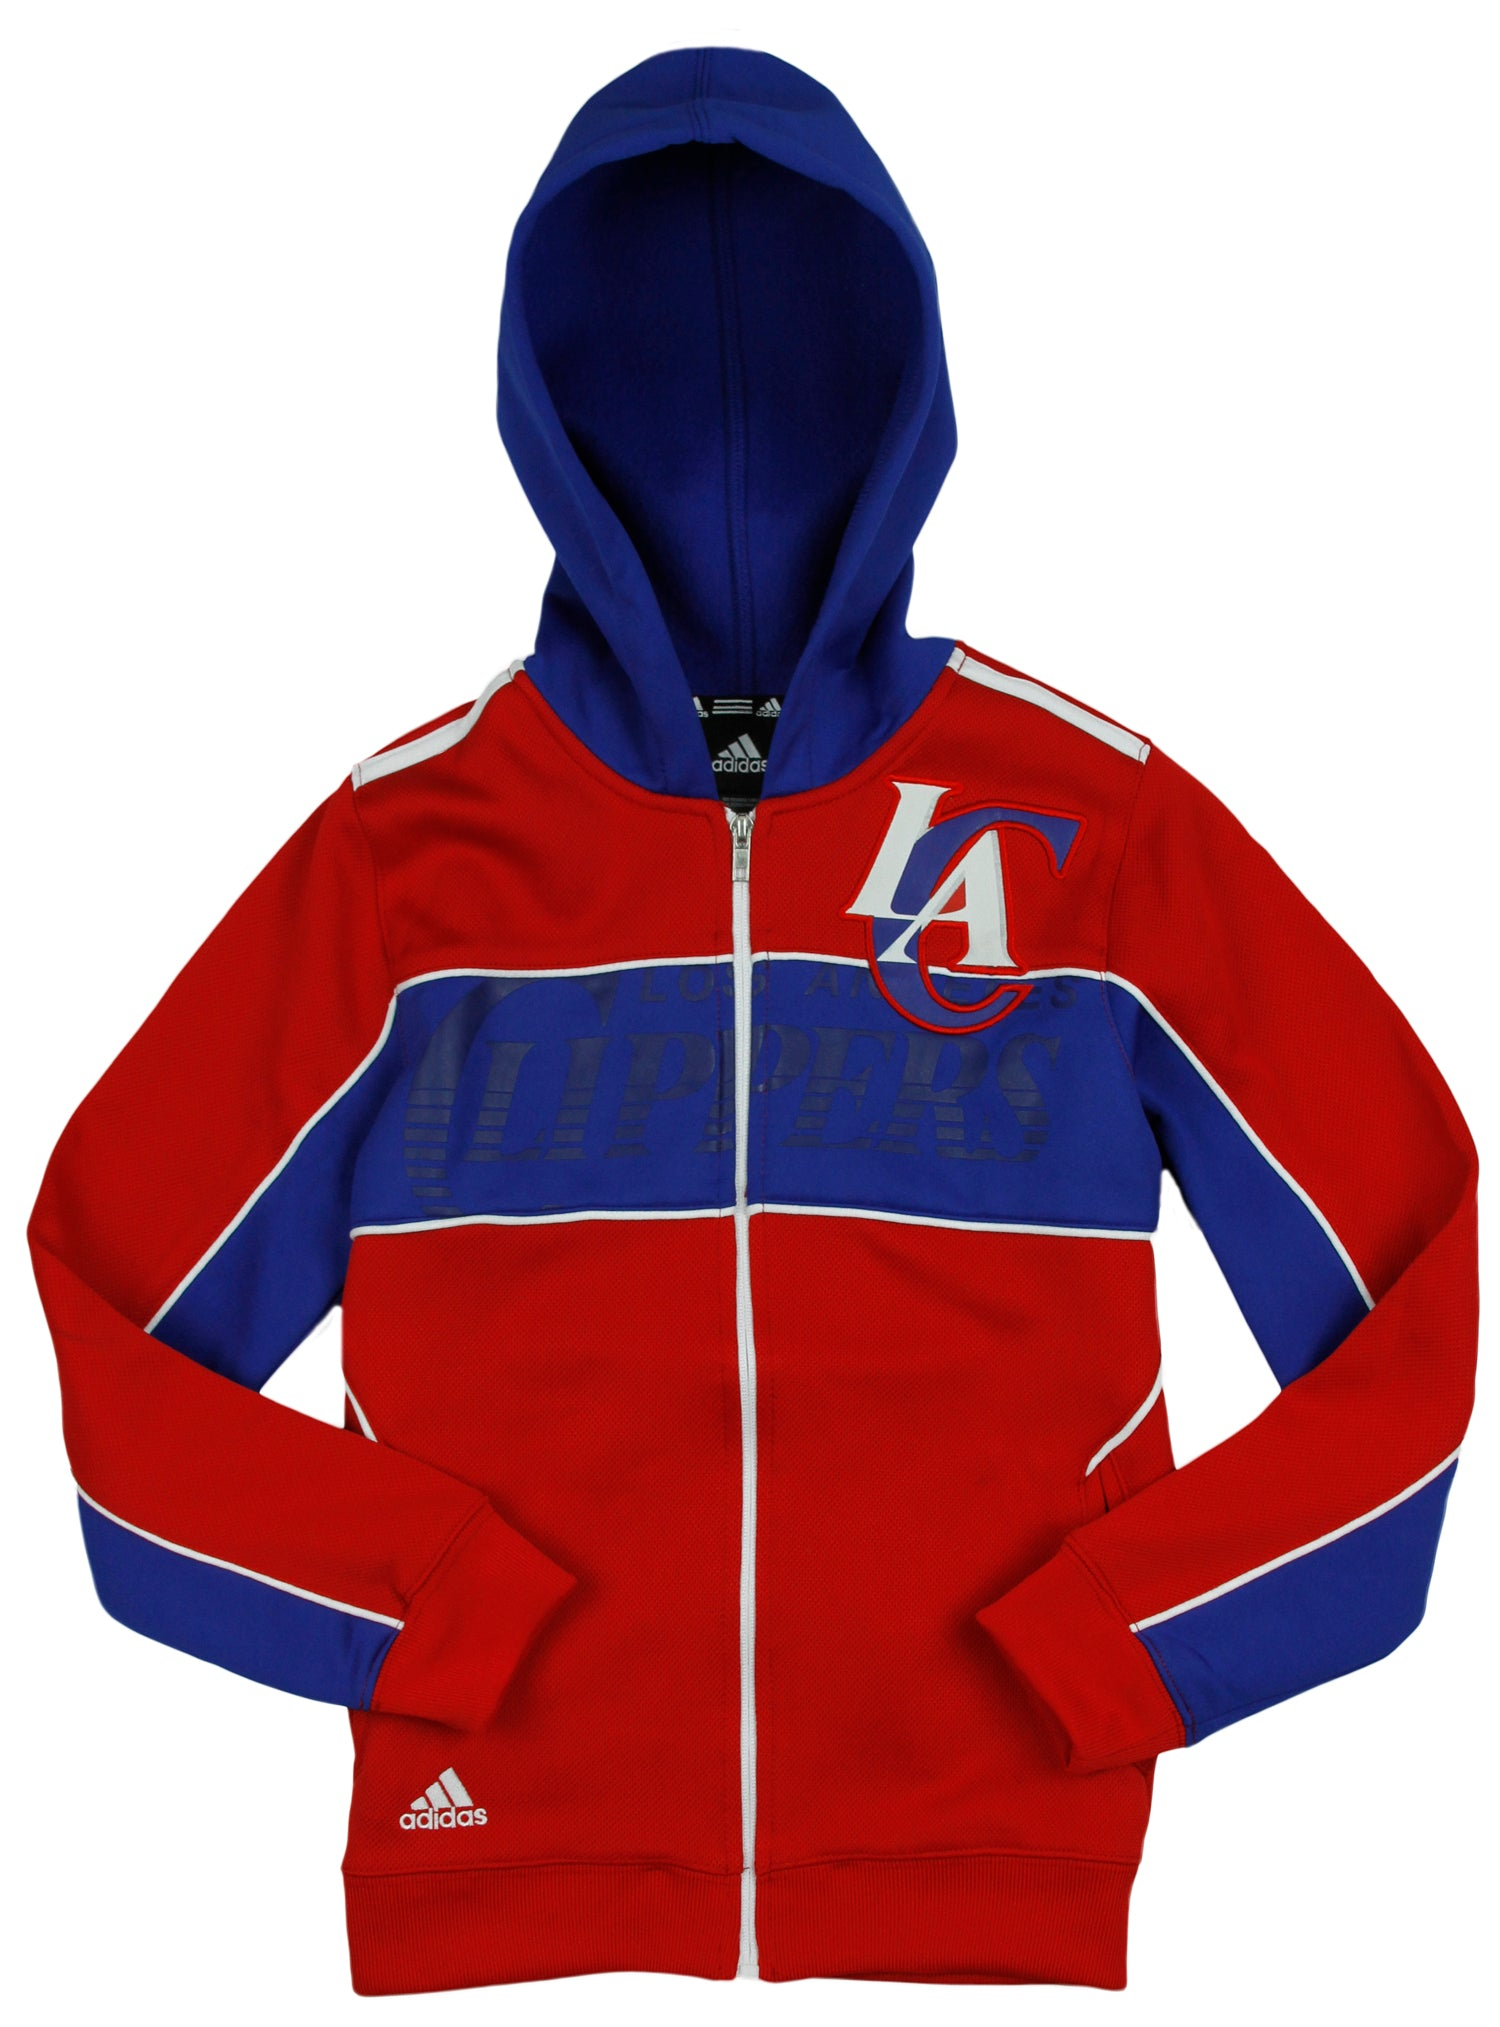 Adidas NBA Youth Los Angeles Clippers Pregame Full Zip Hoodie